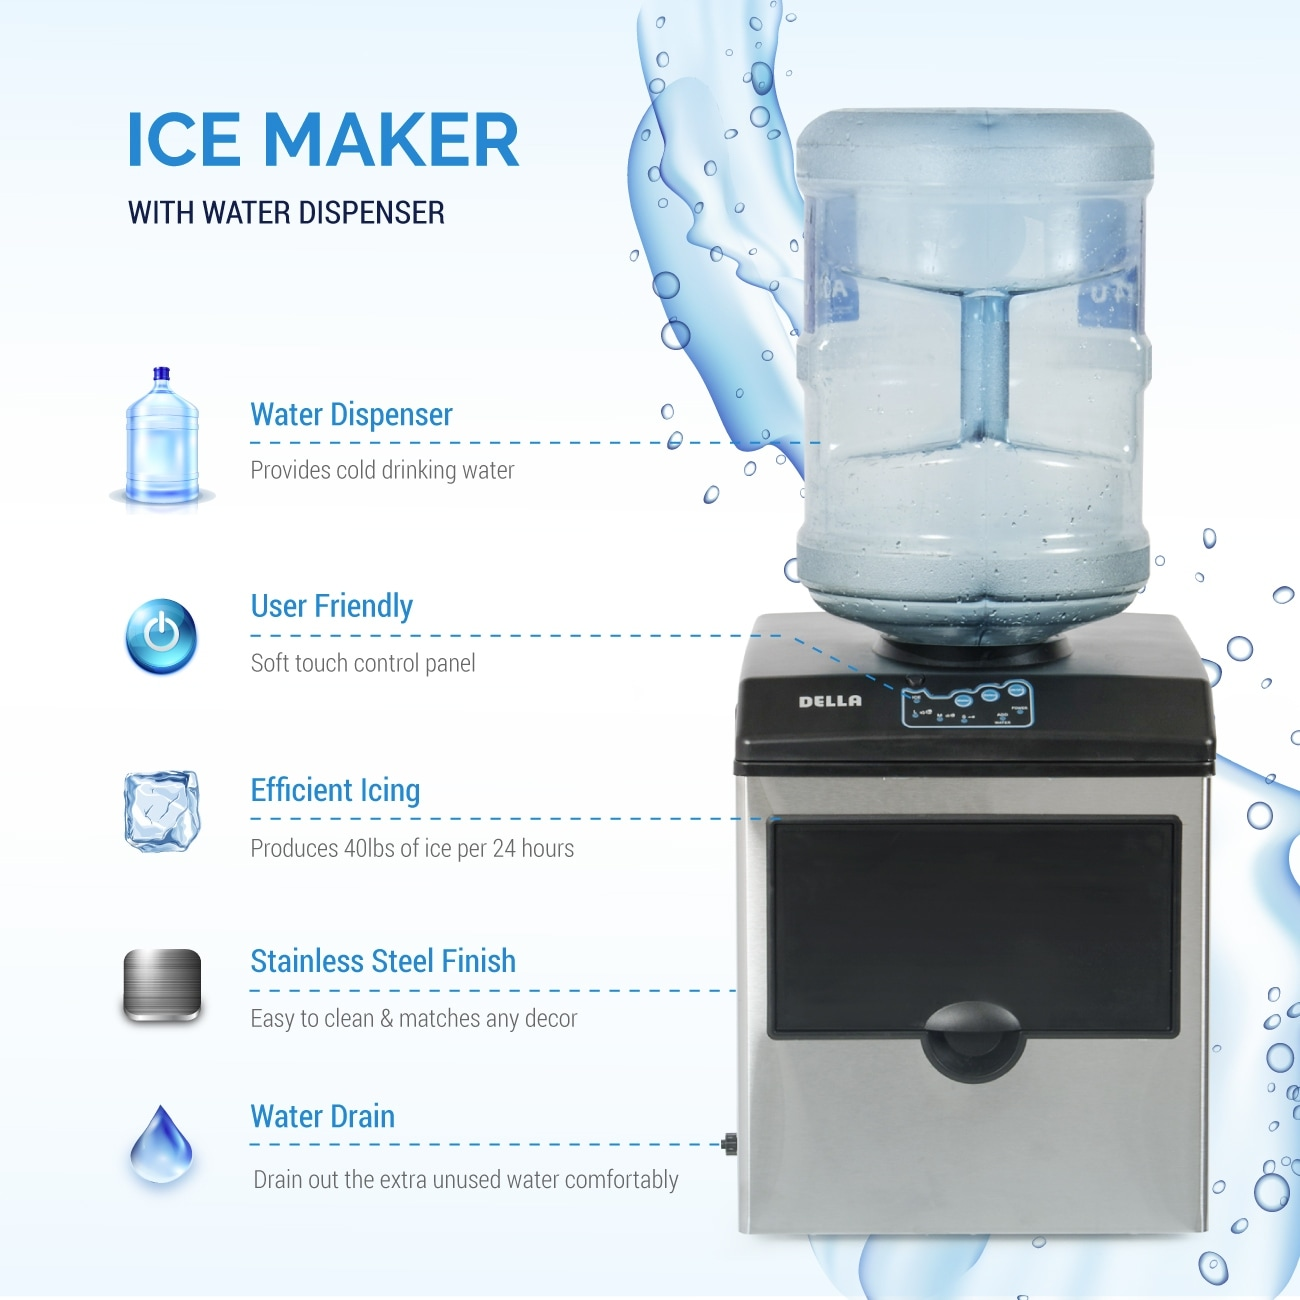 Stainless Steel Ice Cube Makers Products 40lbs Daily ADT 2 in 1 ...